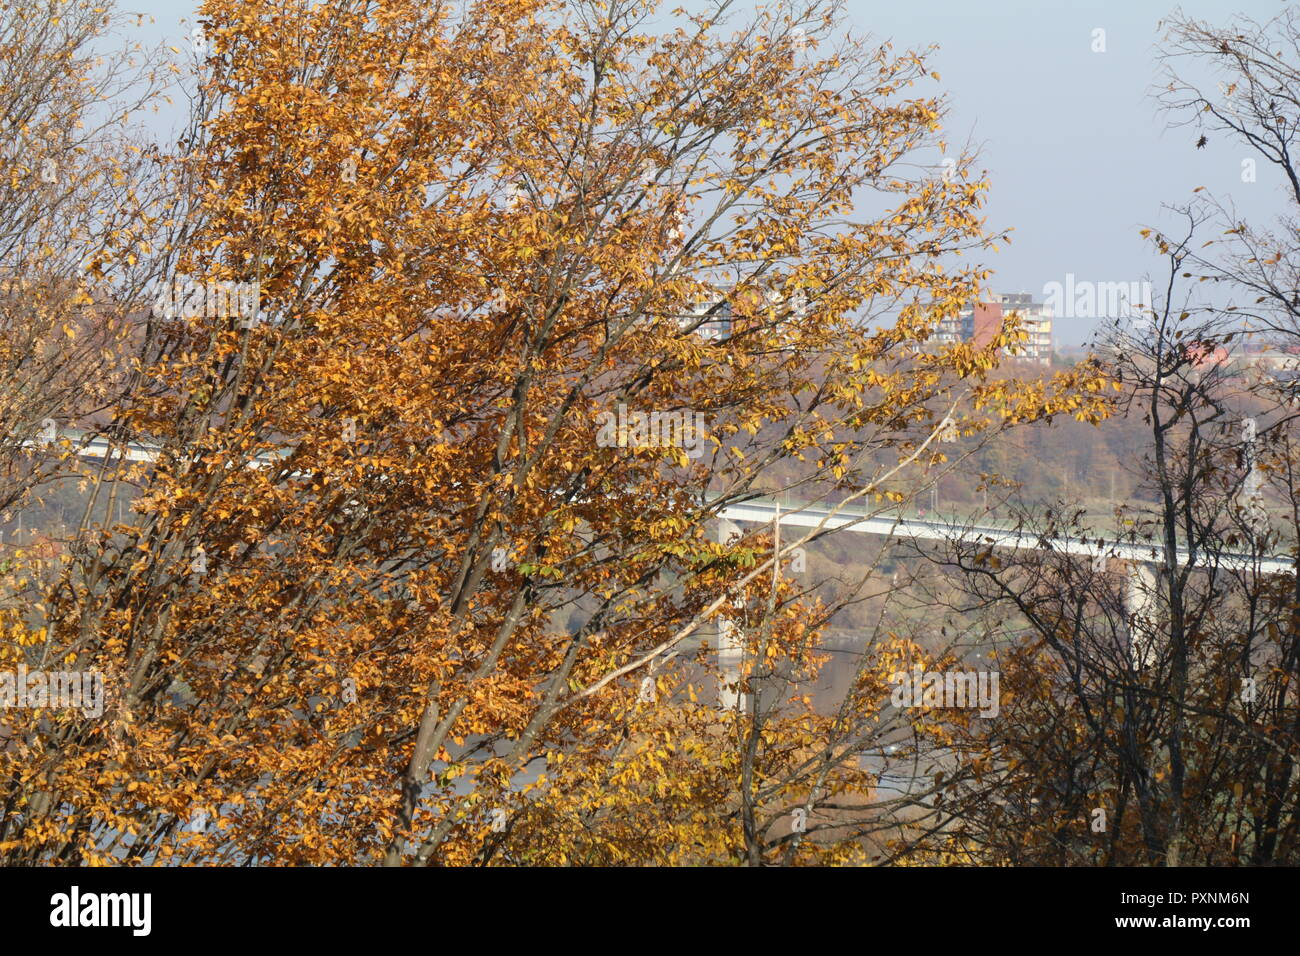 Sunny day in Kaunas Lithuania - Stock Image